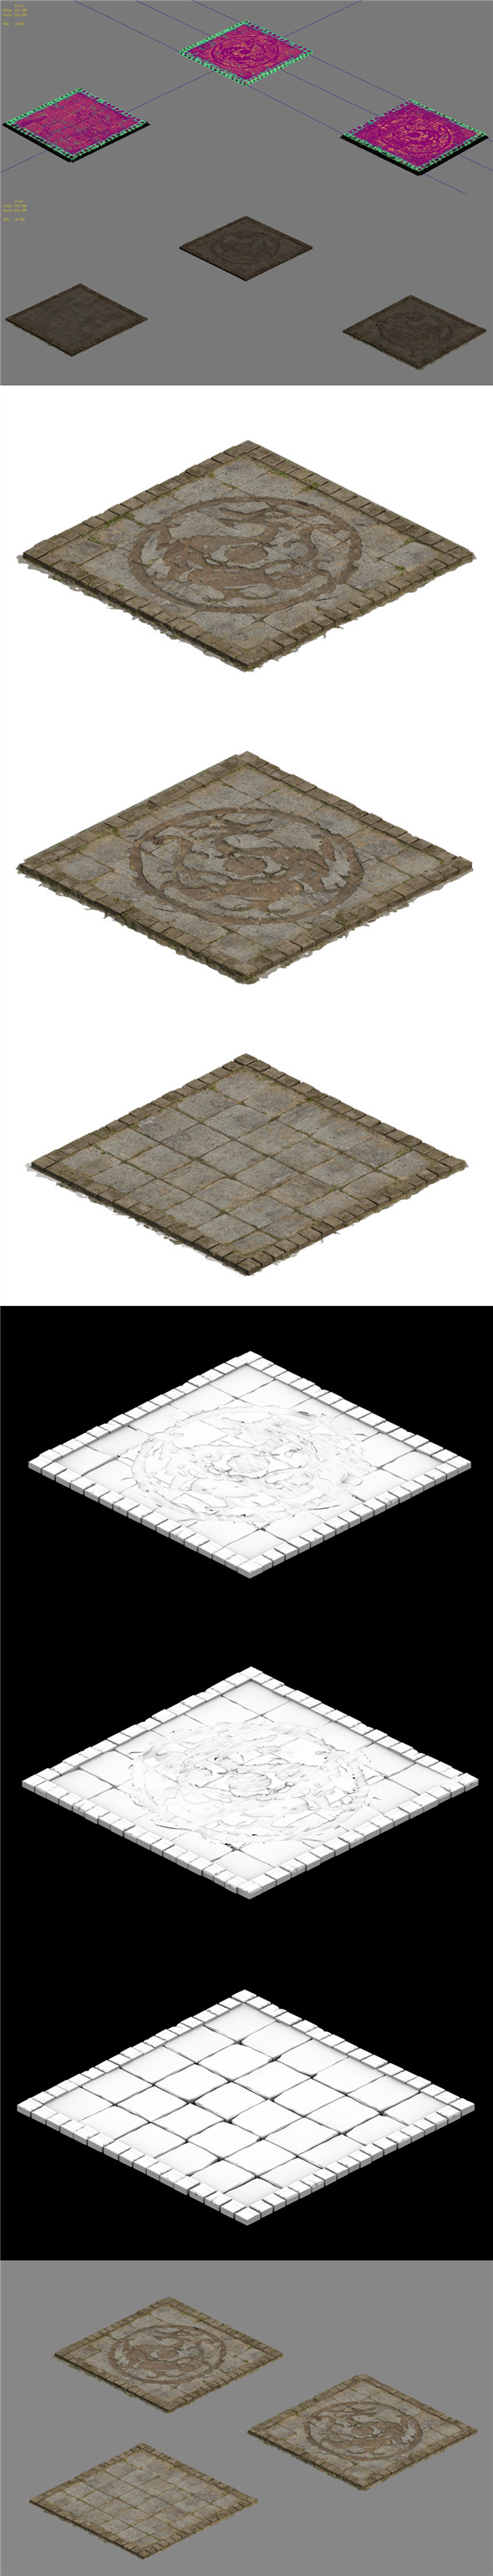 Ground parquet - dragon brick - 3DOcean Item for Sale